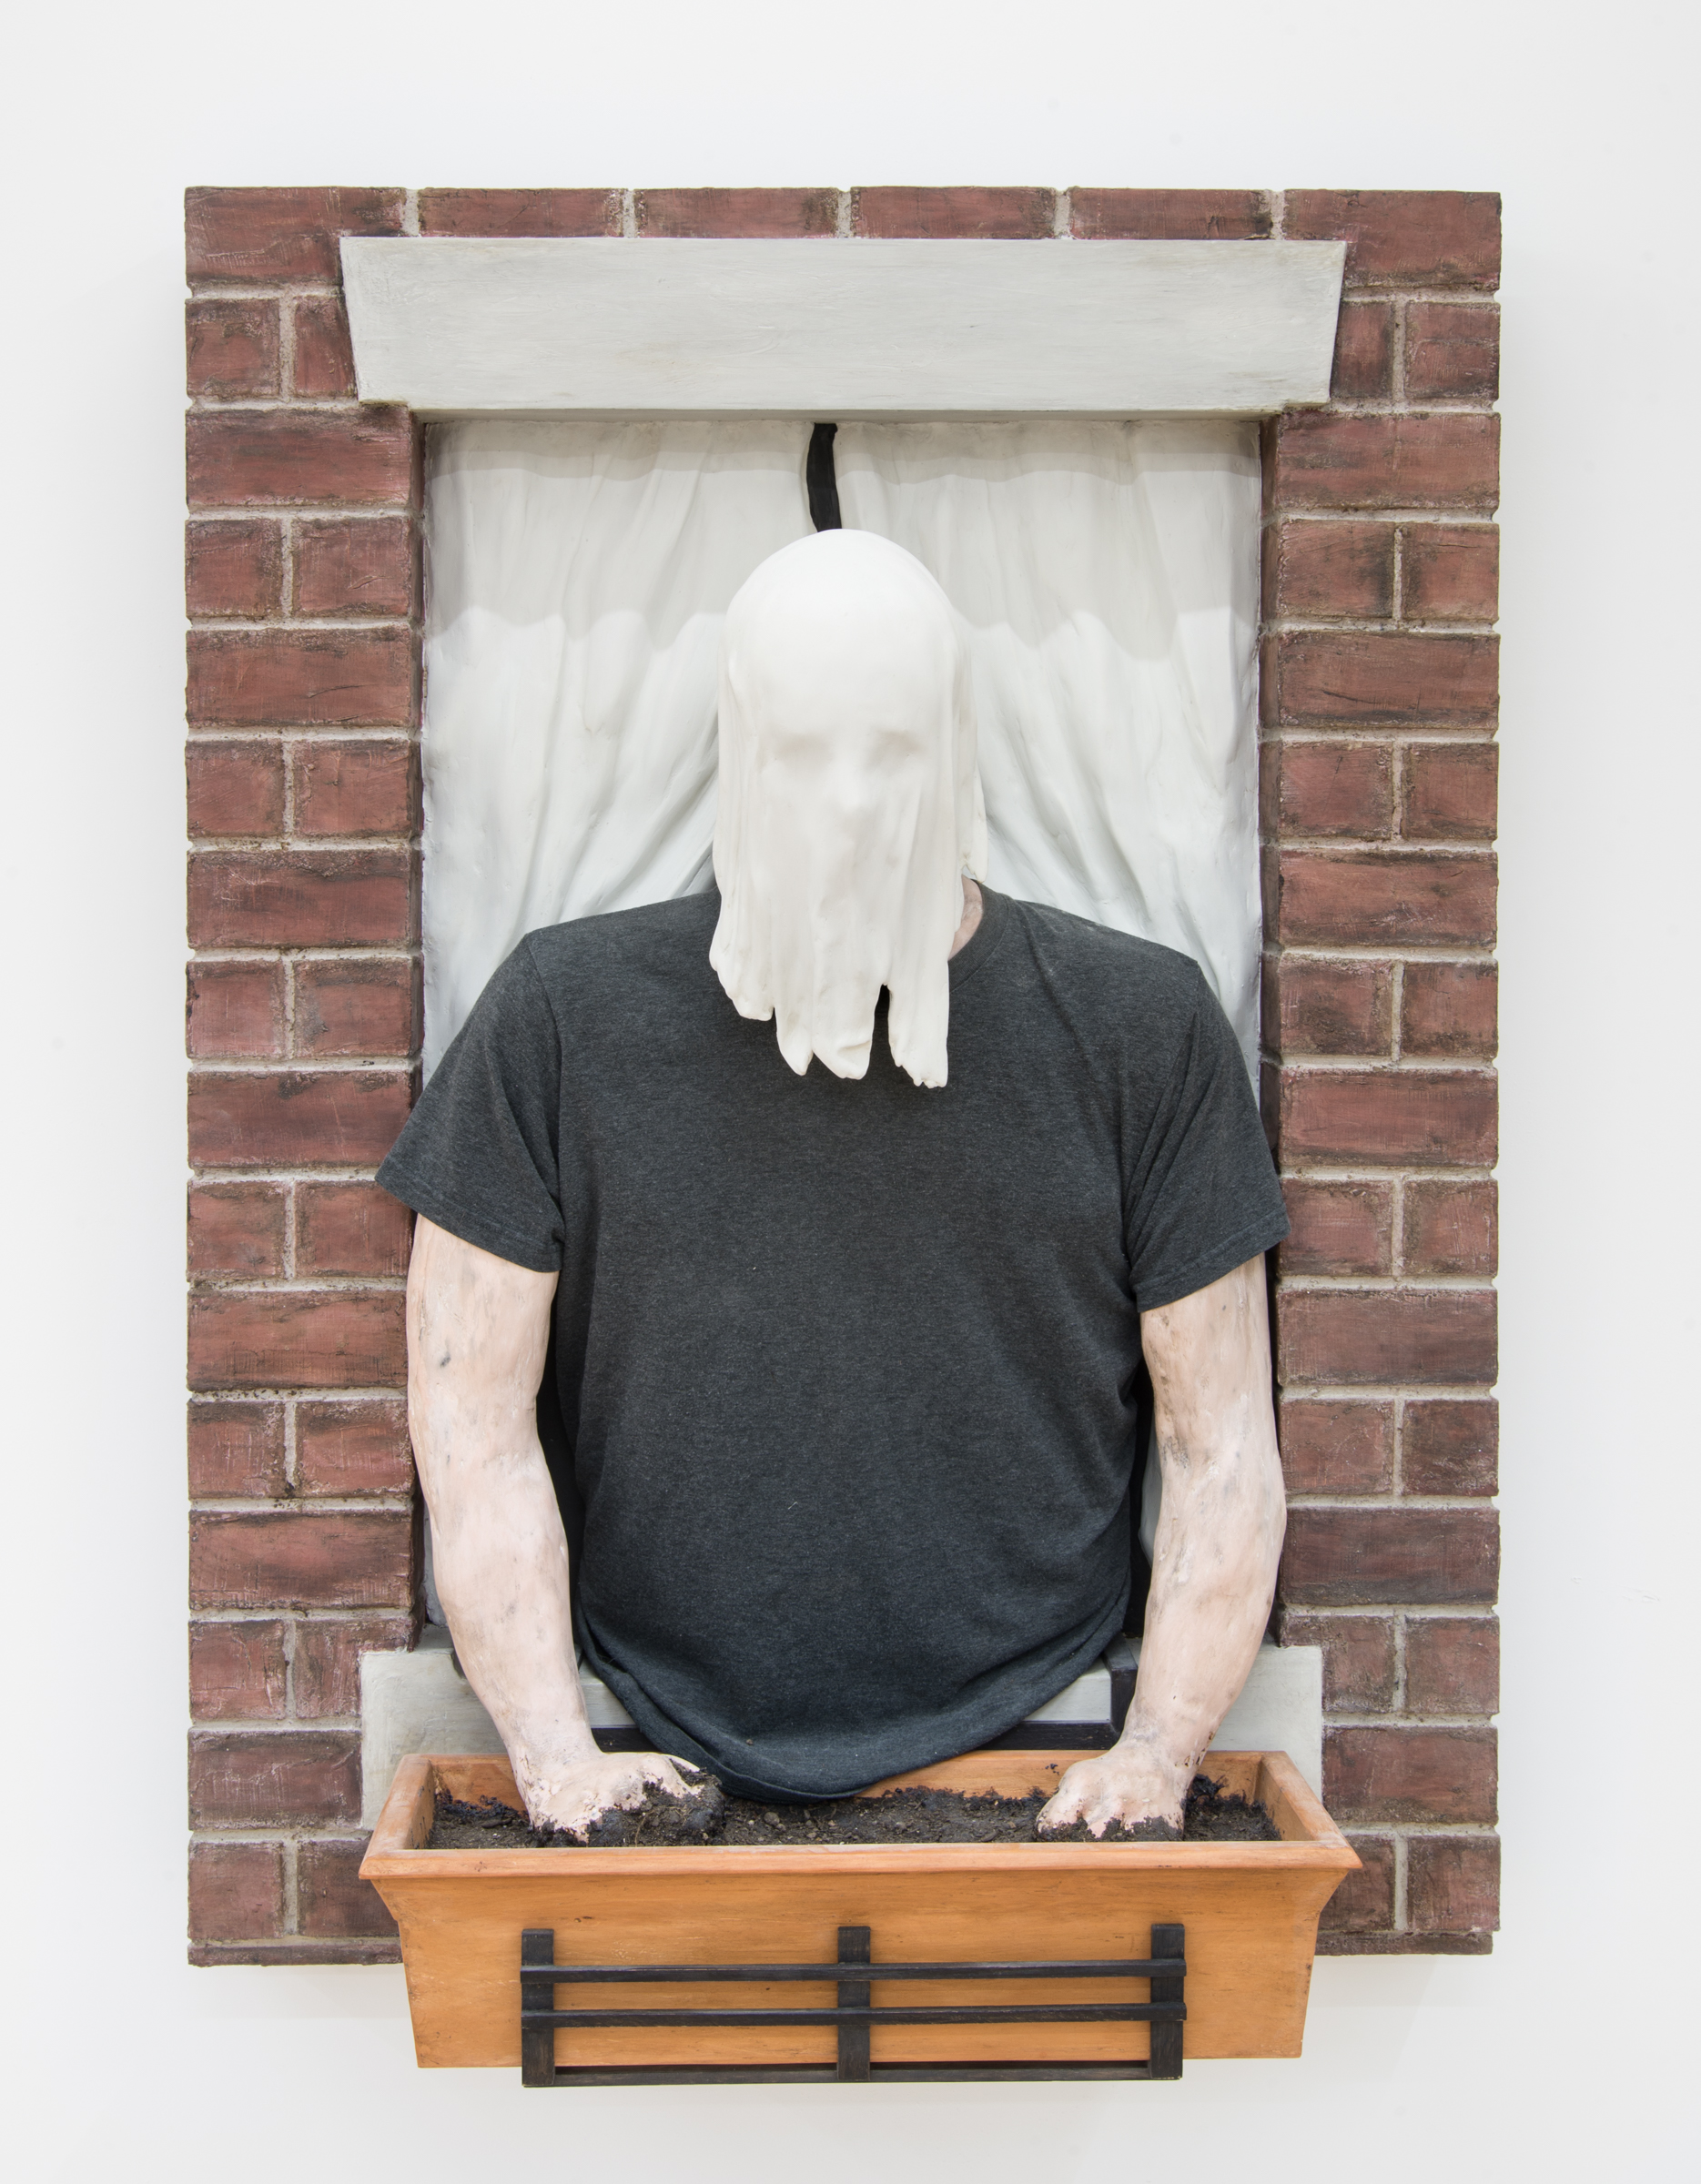 Dan Herschlein  Now I'm Someone You Can See Through  2017 Wood, plaster, pigmented joint compound, mortar, milk paint, wax, soil, and t-shirt 48 ¼h x 35 ½w x 15d in DH003